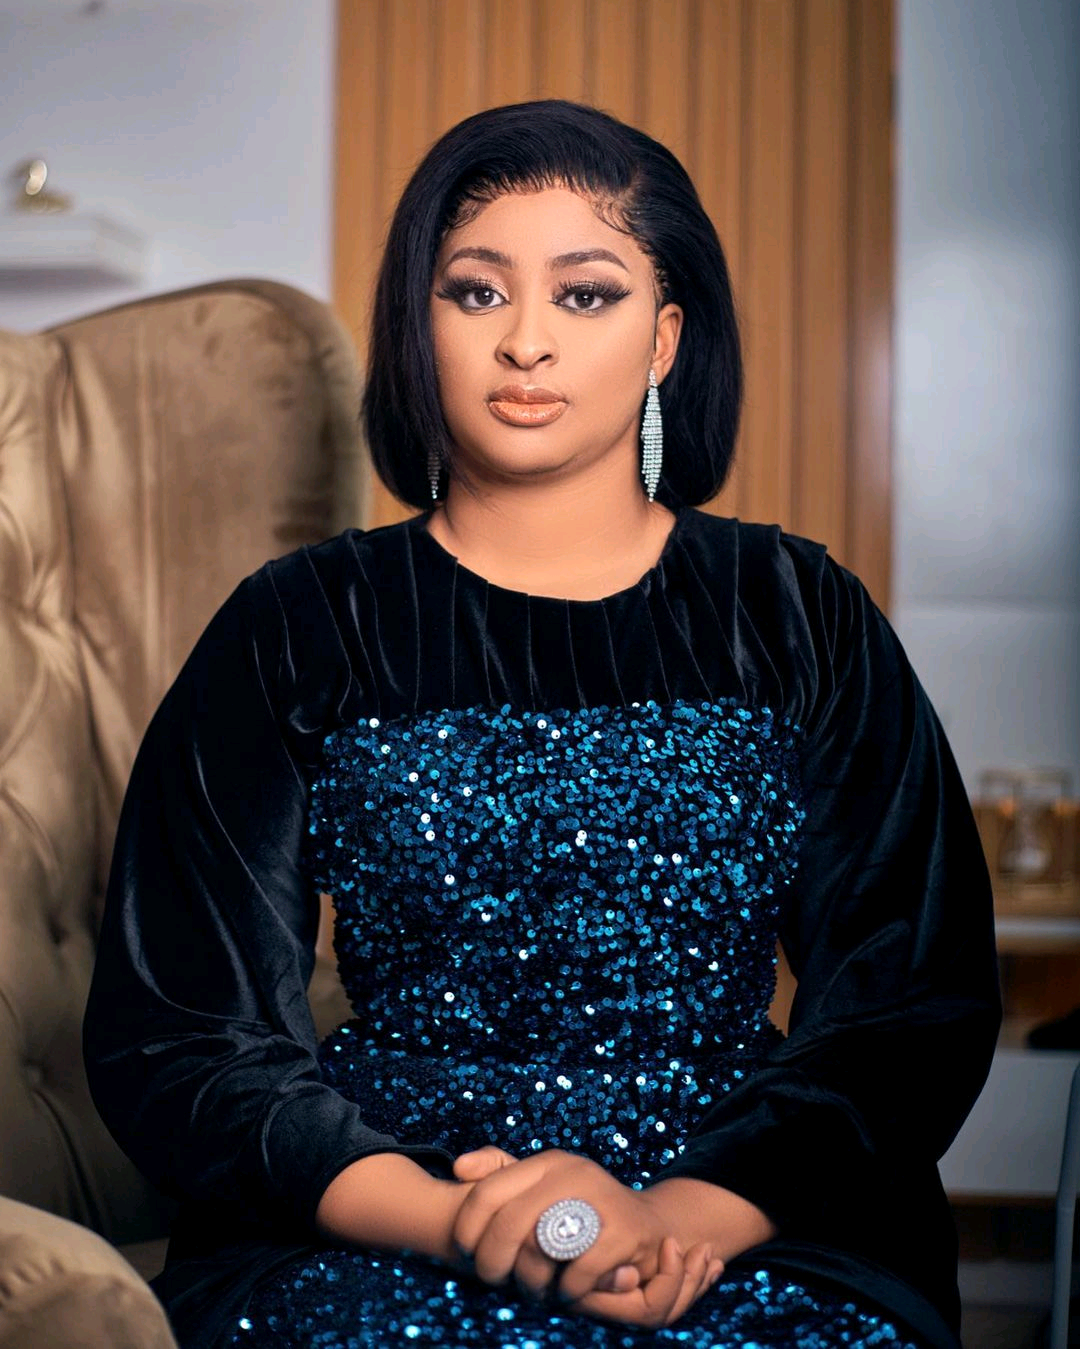 There Are More Relevant Things To Fight For Than Free Menstrual Pad For Girls - Actress Etinosa Idemudia